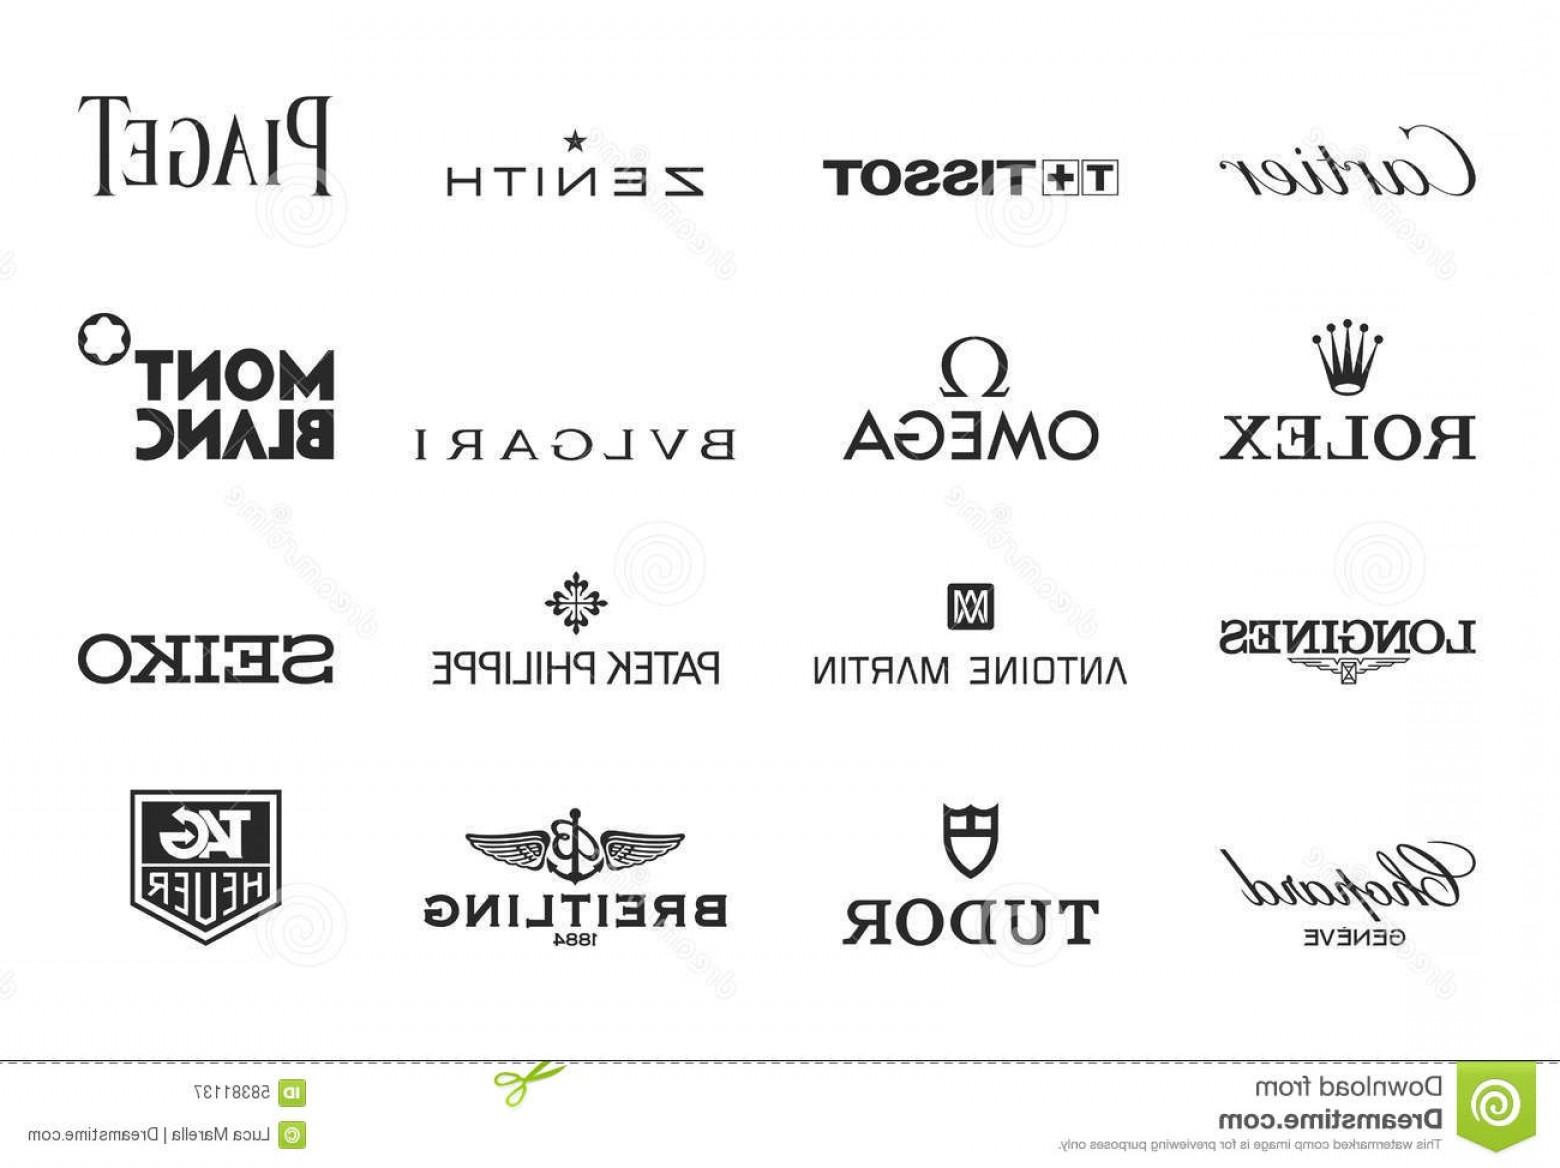 The World Vector Logos Of Brands: Editorial Photography Luxury Watches Logos Vector Brand Collection Most Famous Producers World Eps File Available Image